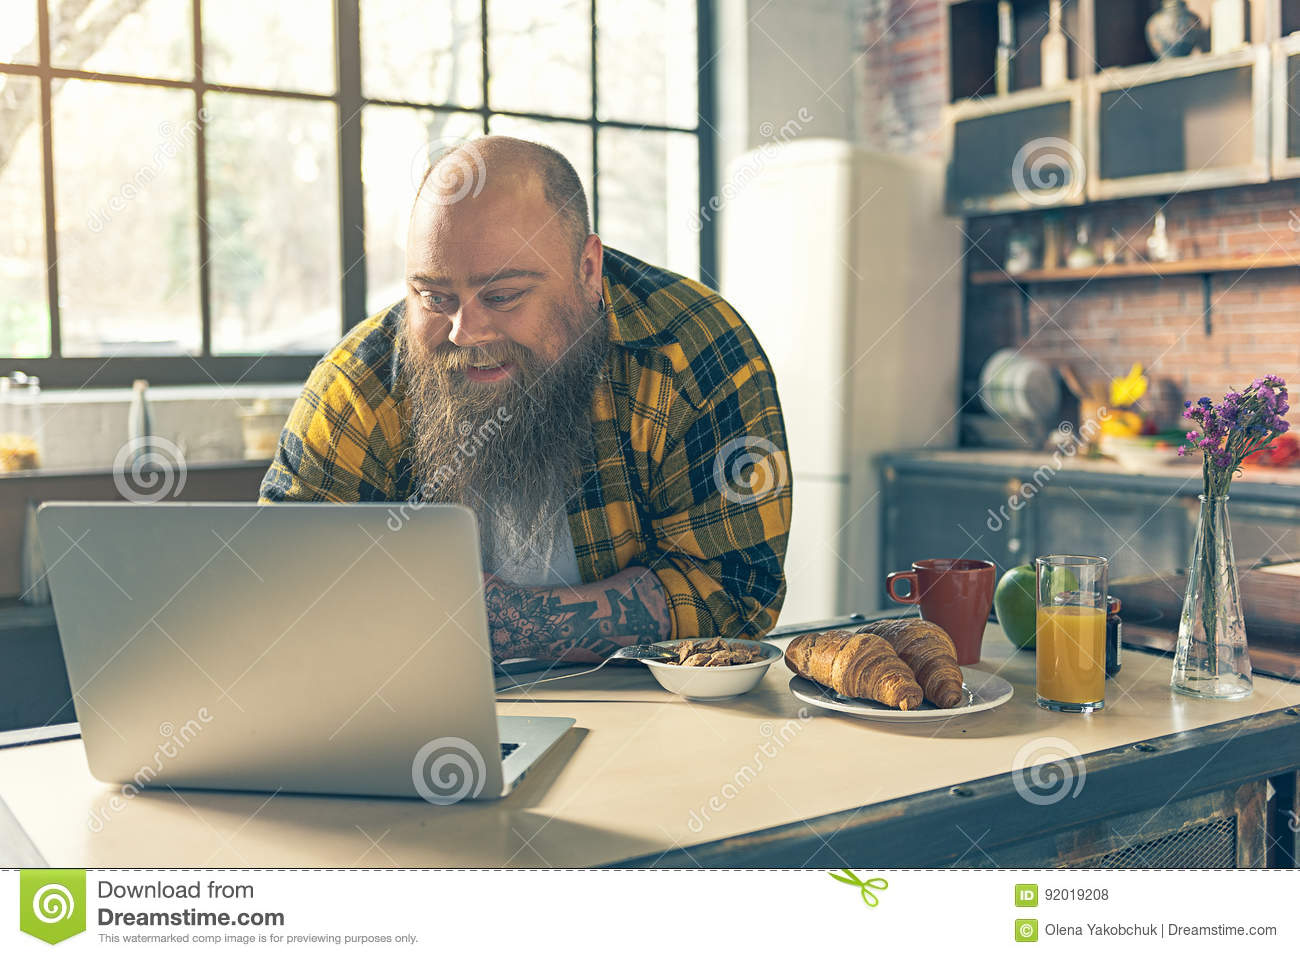 guy computer Fat